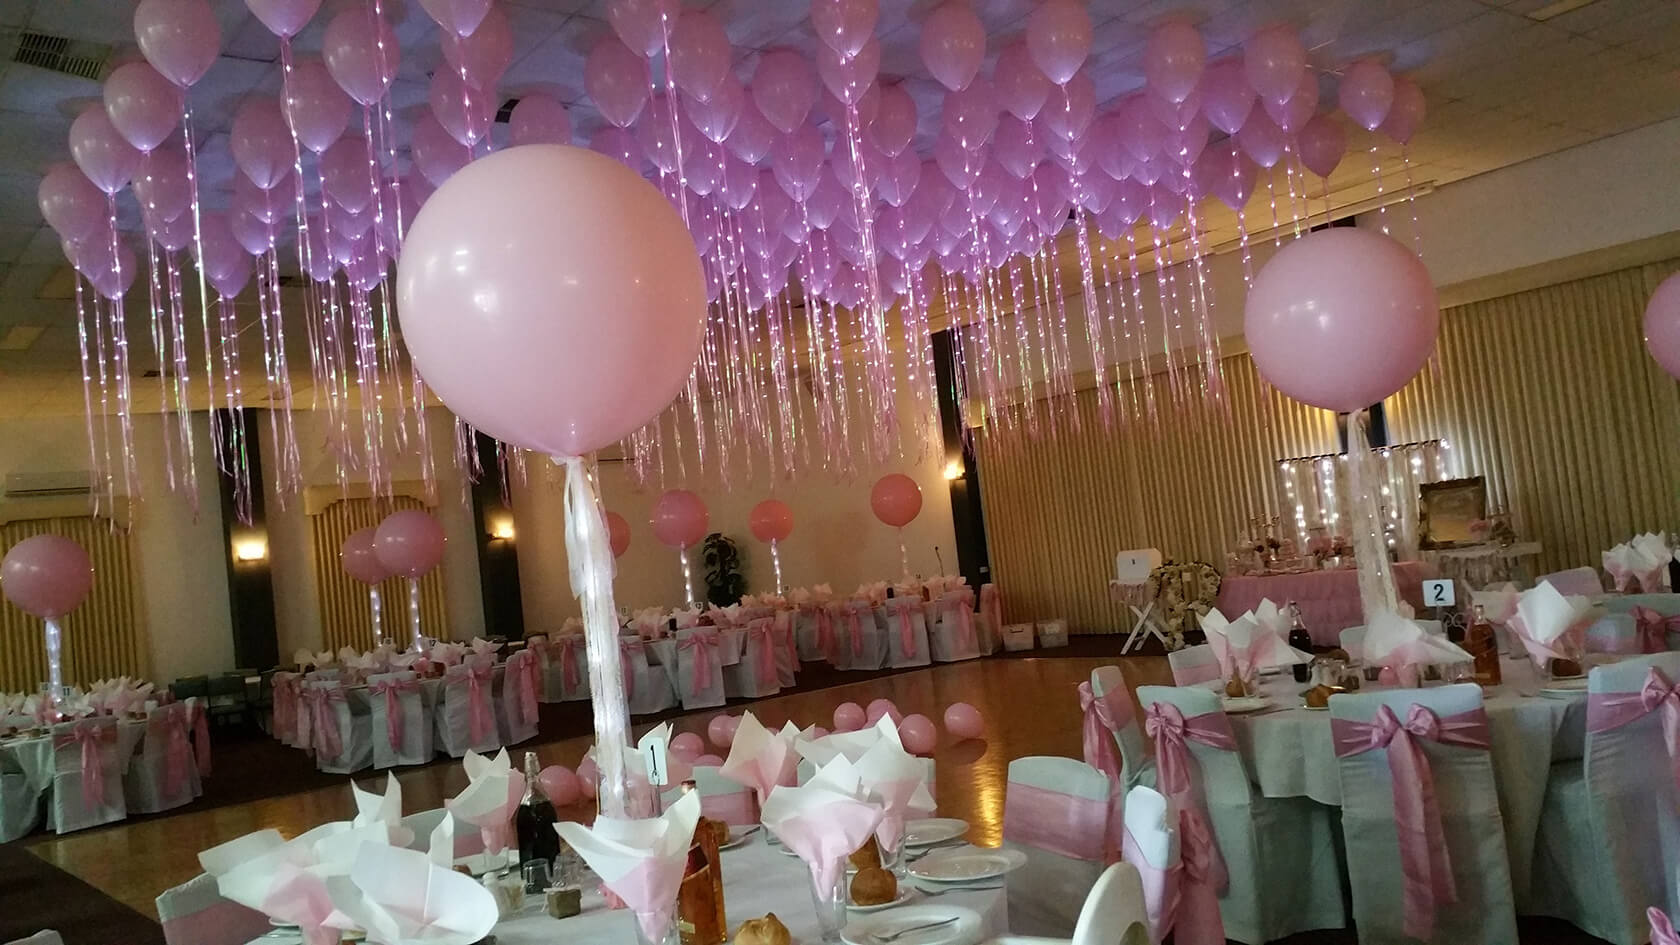 CE-68 - corporate - creative design - shivoo balloons and decor specialists in coburg north